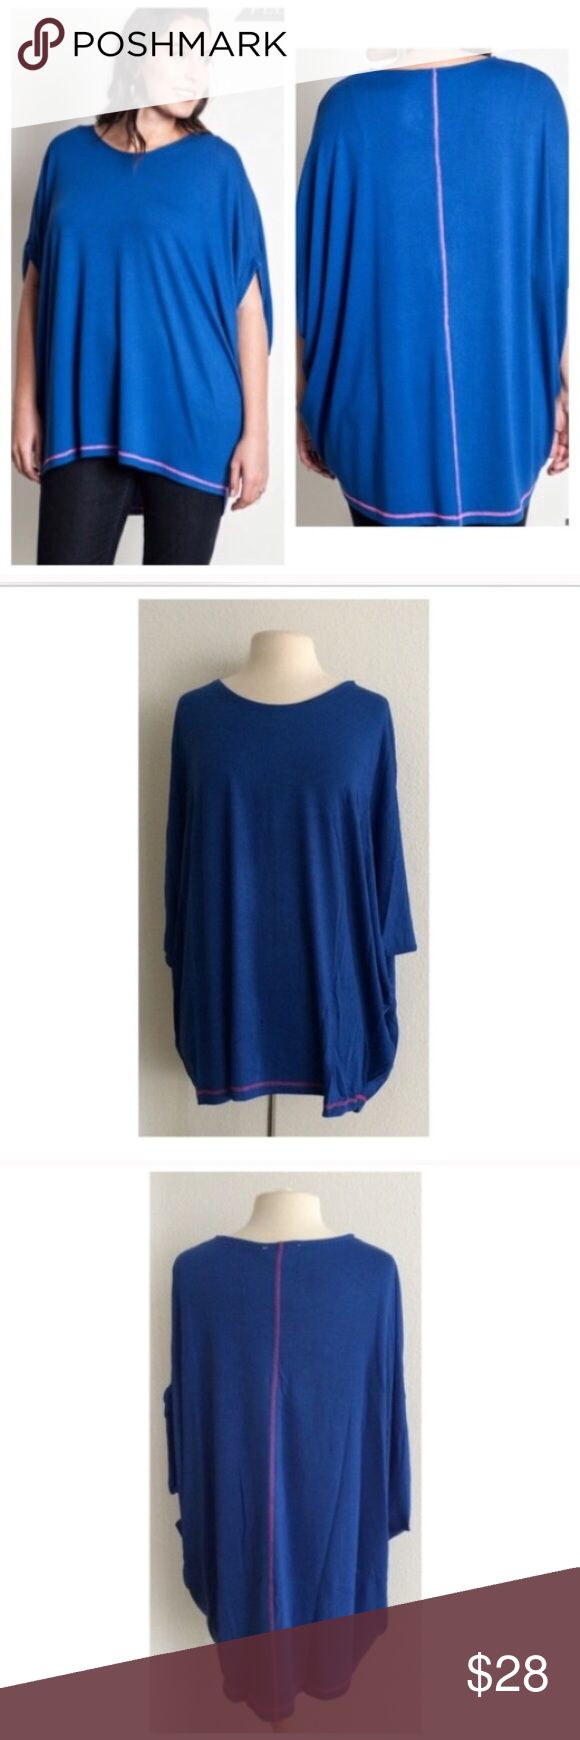 "(Plus) Blue top Blue batwing top  Length- approx 32""  Materials- 65% cotton/ 35% polyester. This is a pretty thick top and it is extremely versatile. It can be dressed up or dressed down. Runs slightly large.  Availability- XL•1x • 3•2 ⭐️This item is brand new from manufacturer without tags.  🚫NO TRADES 💲Price is firm unless bundled 💰Ask about bundle discounts Tops"